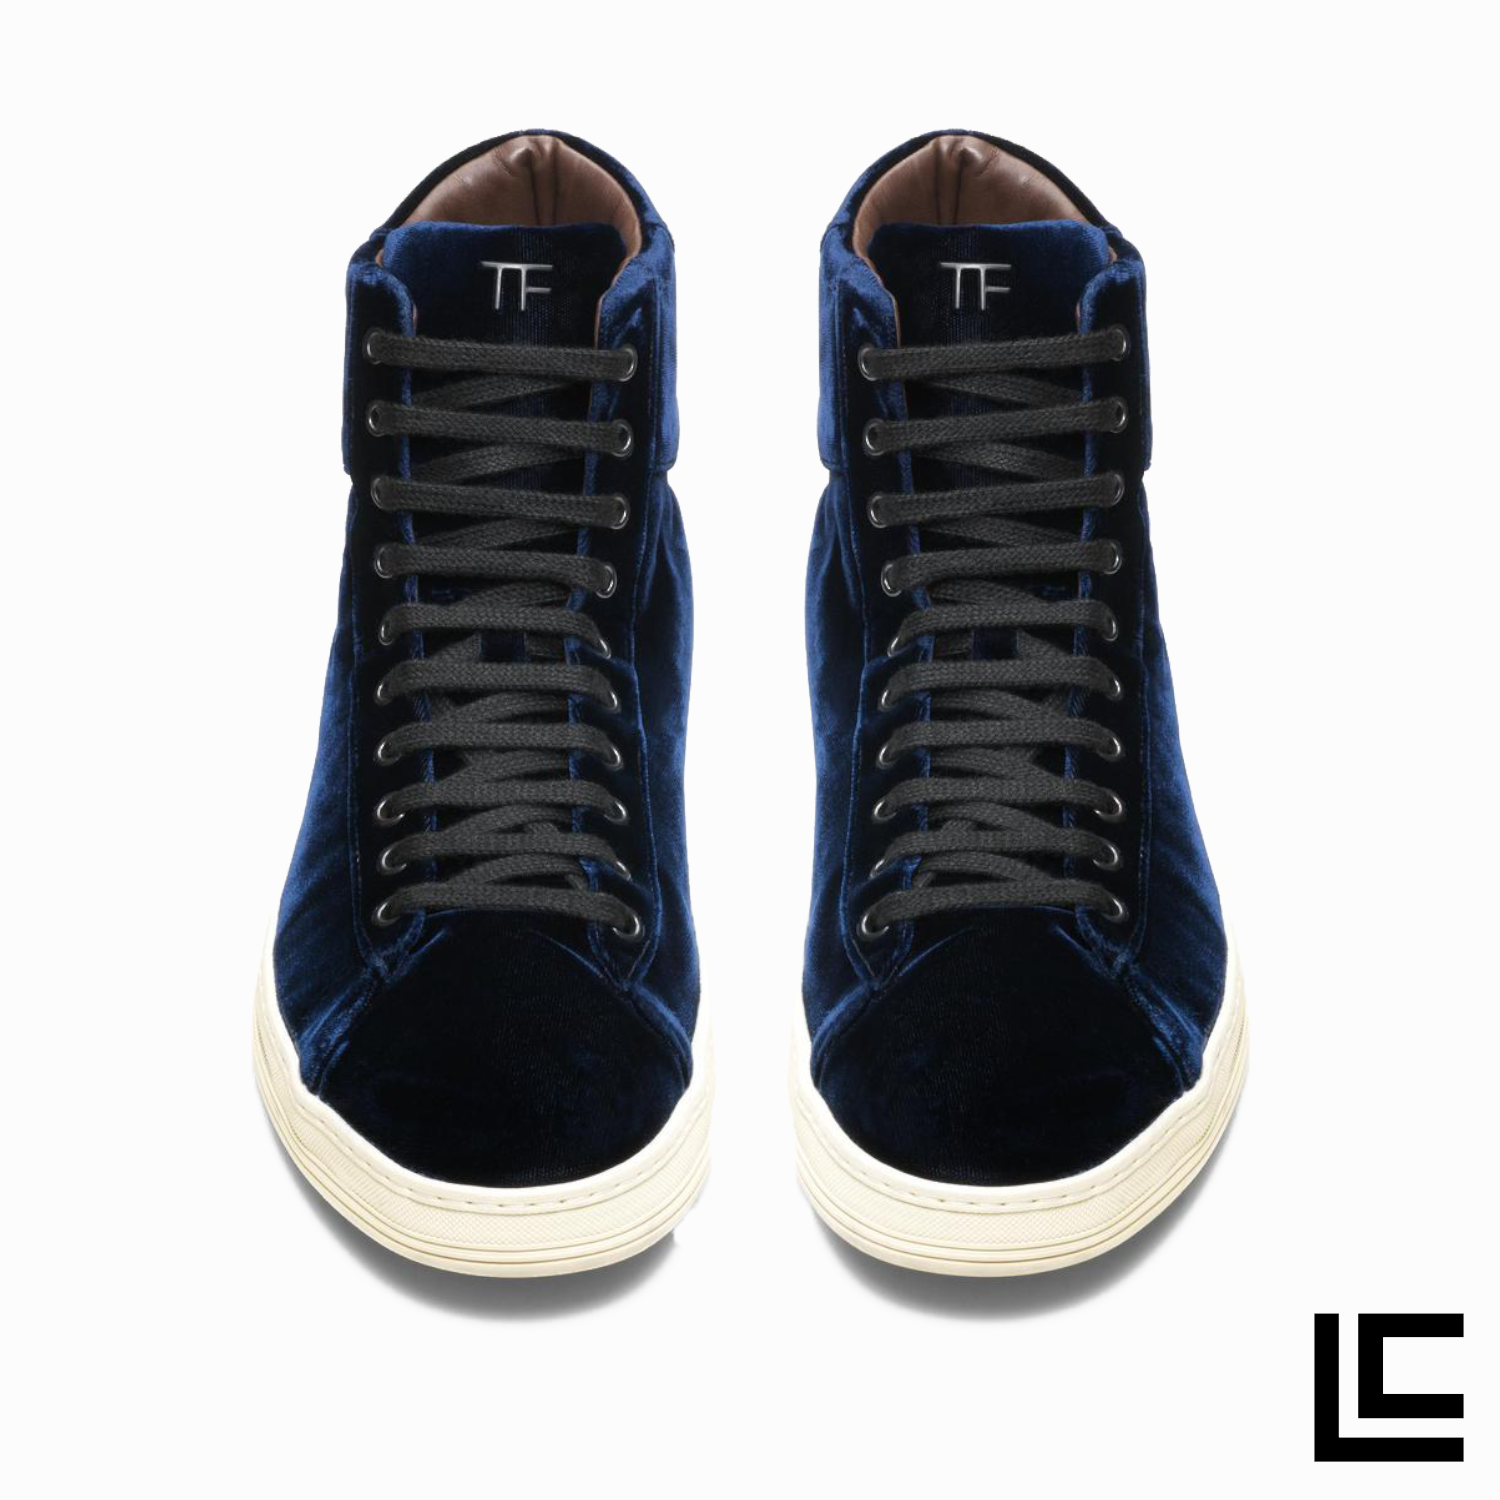 Tom Ford Russel in Blue Suede   High